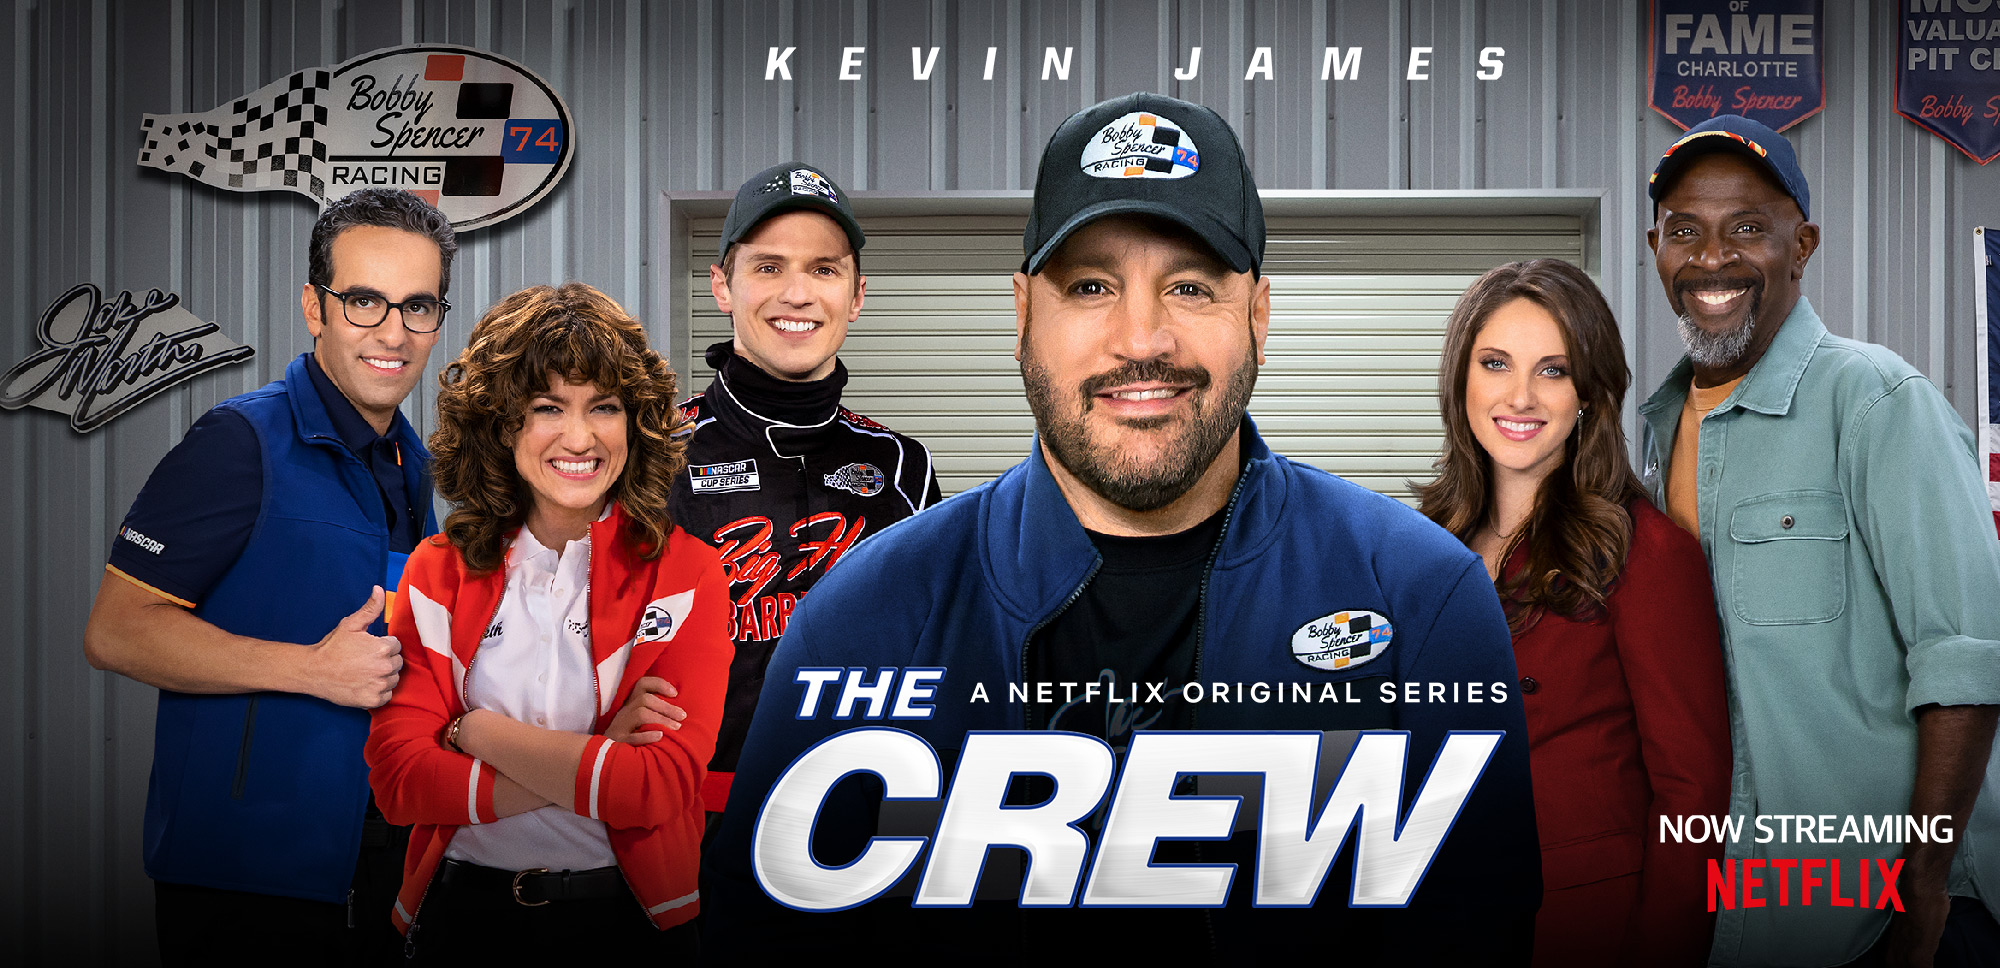 Kevin James: The Crew | A Netflix Original Series